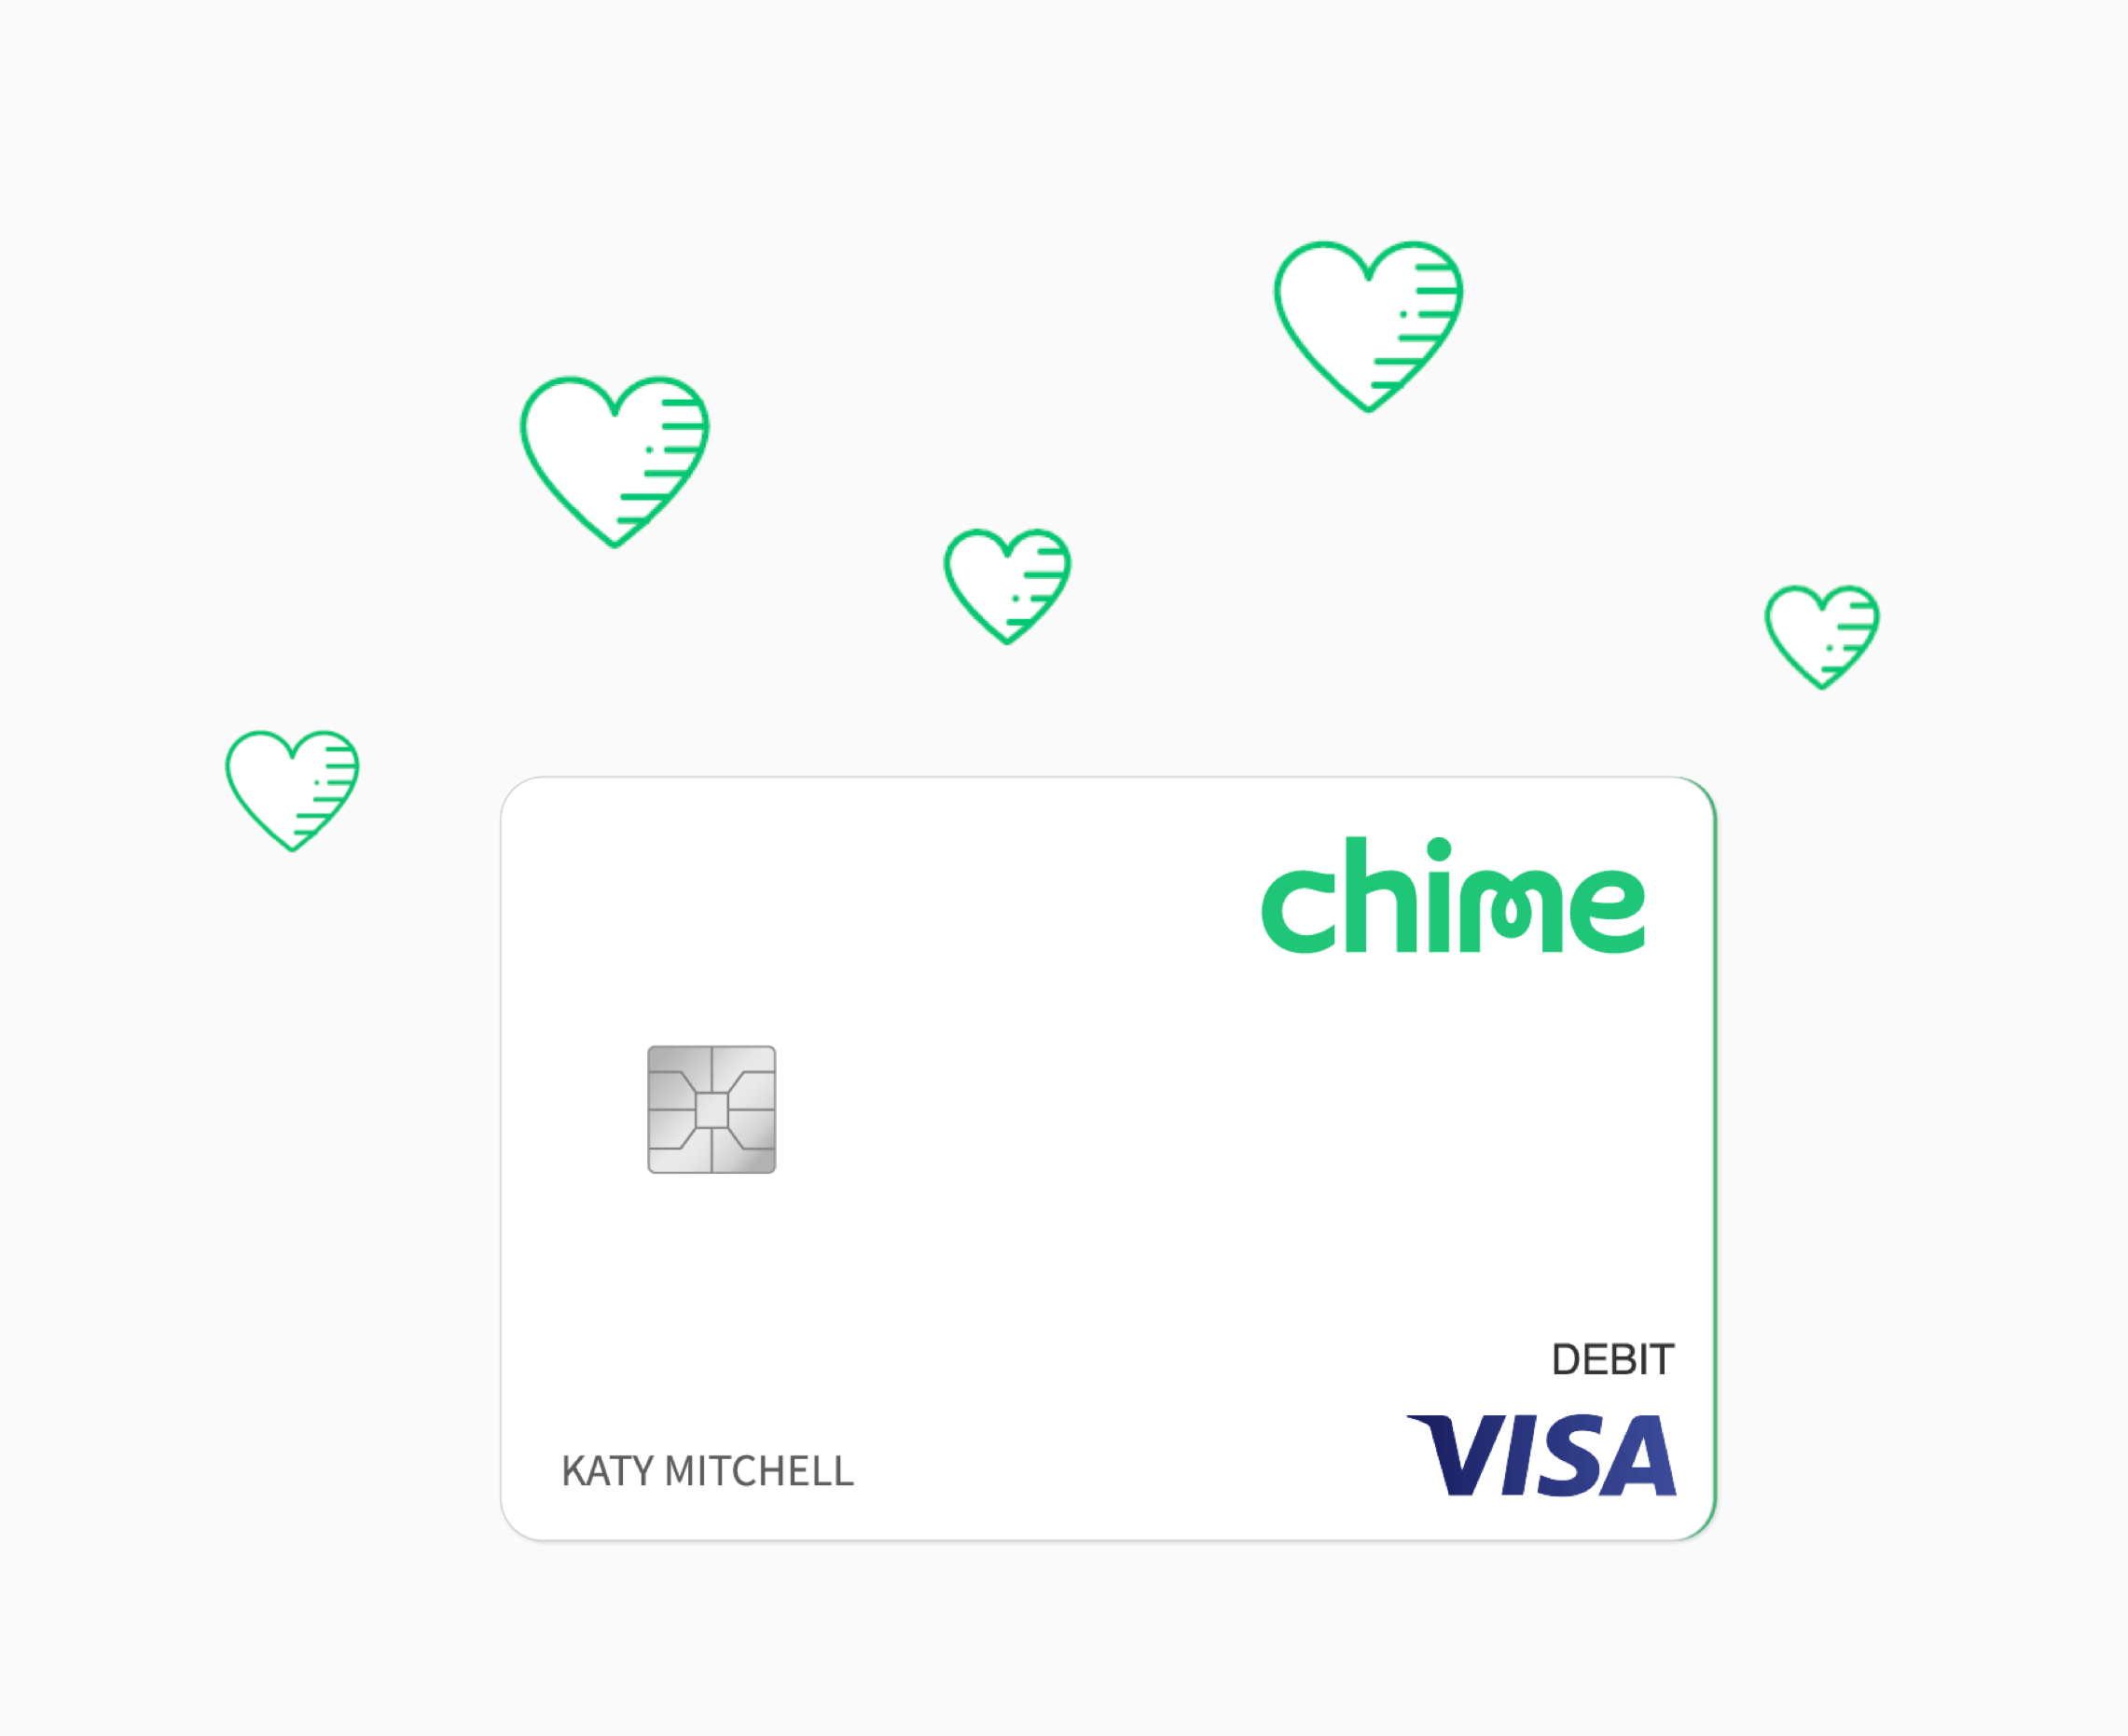 What are the best card designs in the payments market today?